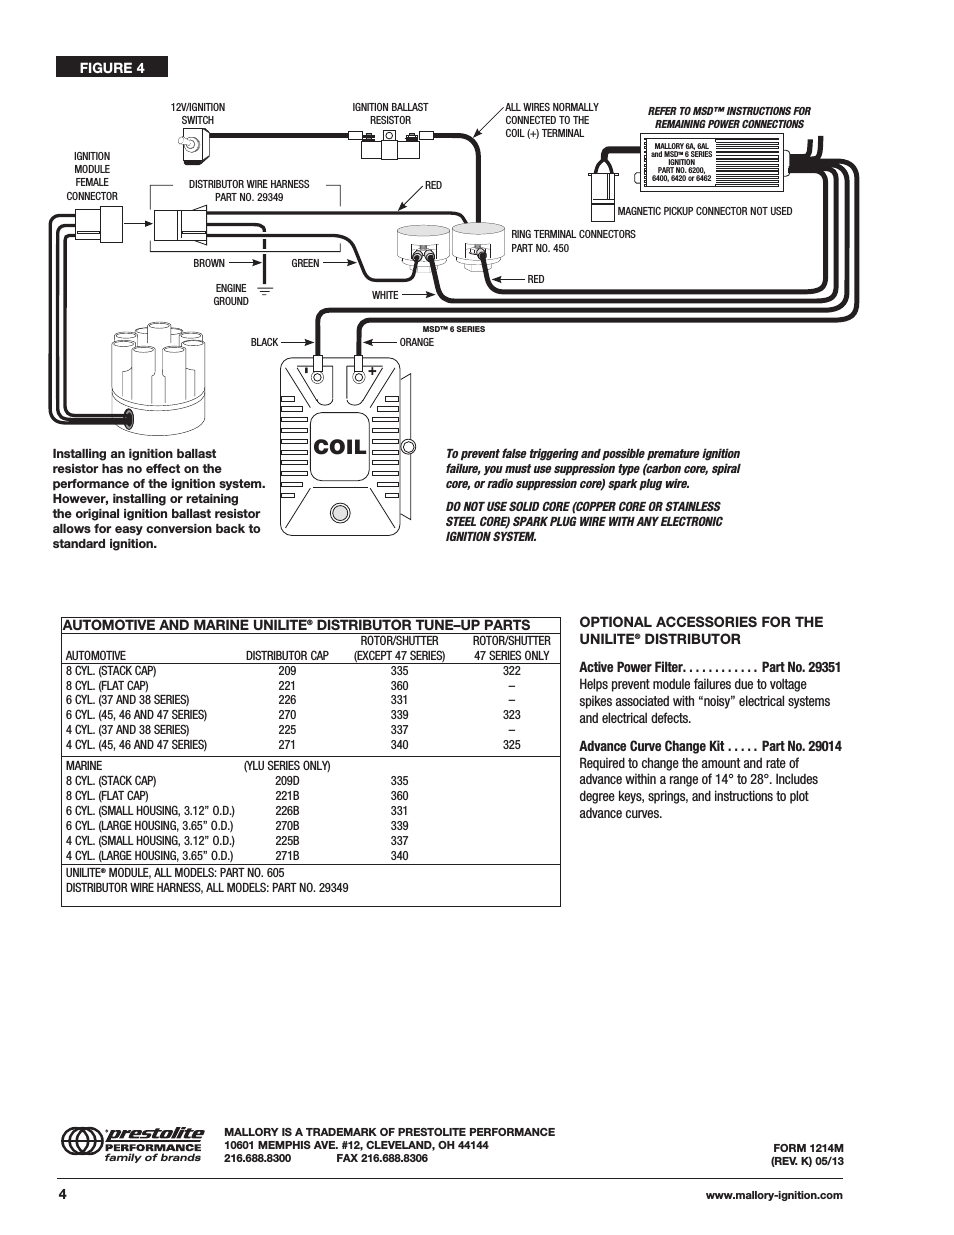 mallory ignition wiring diagram mallory ignition wiring diagram | free wiring diagram mallory 6a ignition wiring diagram #10